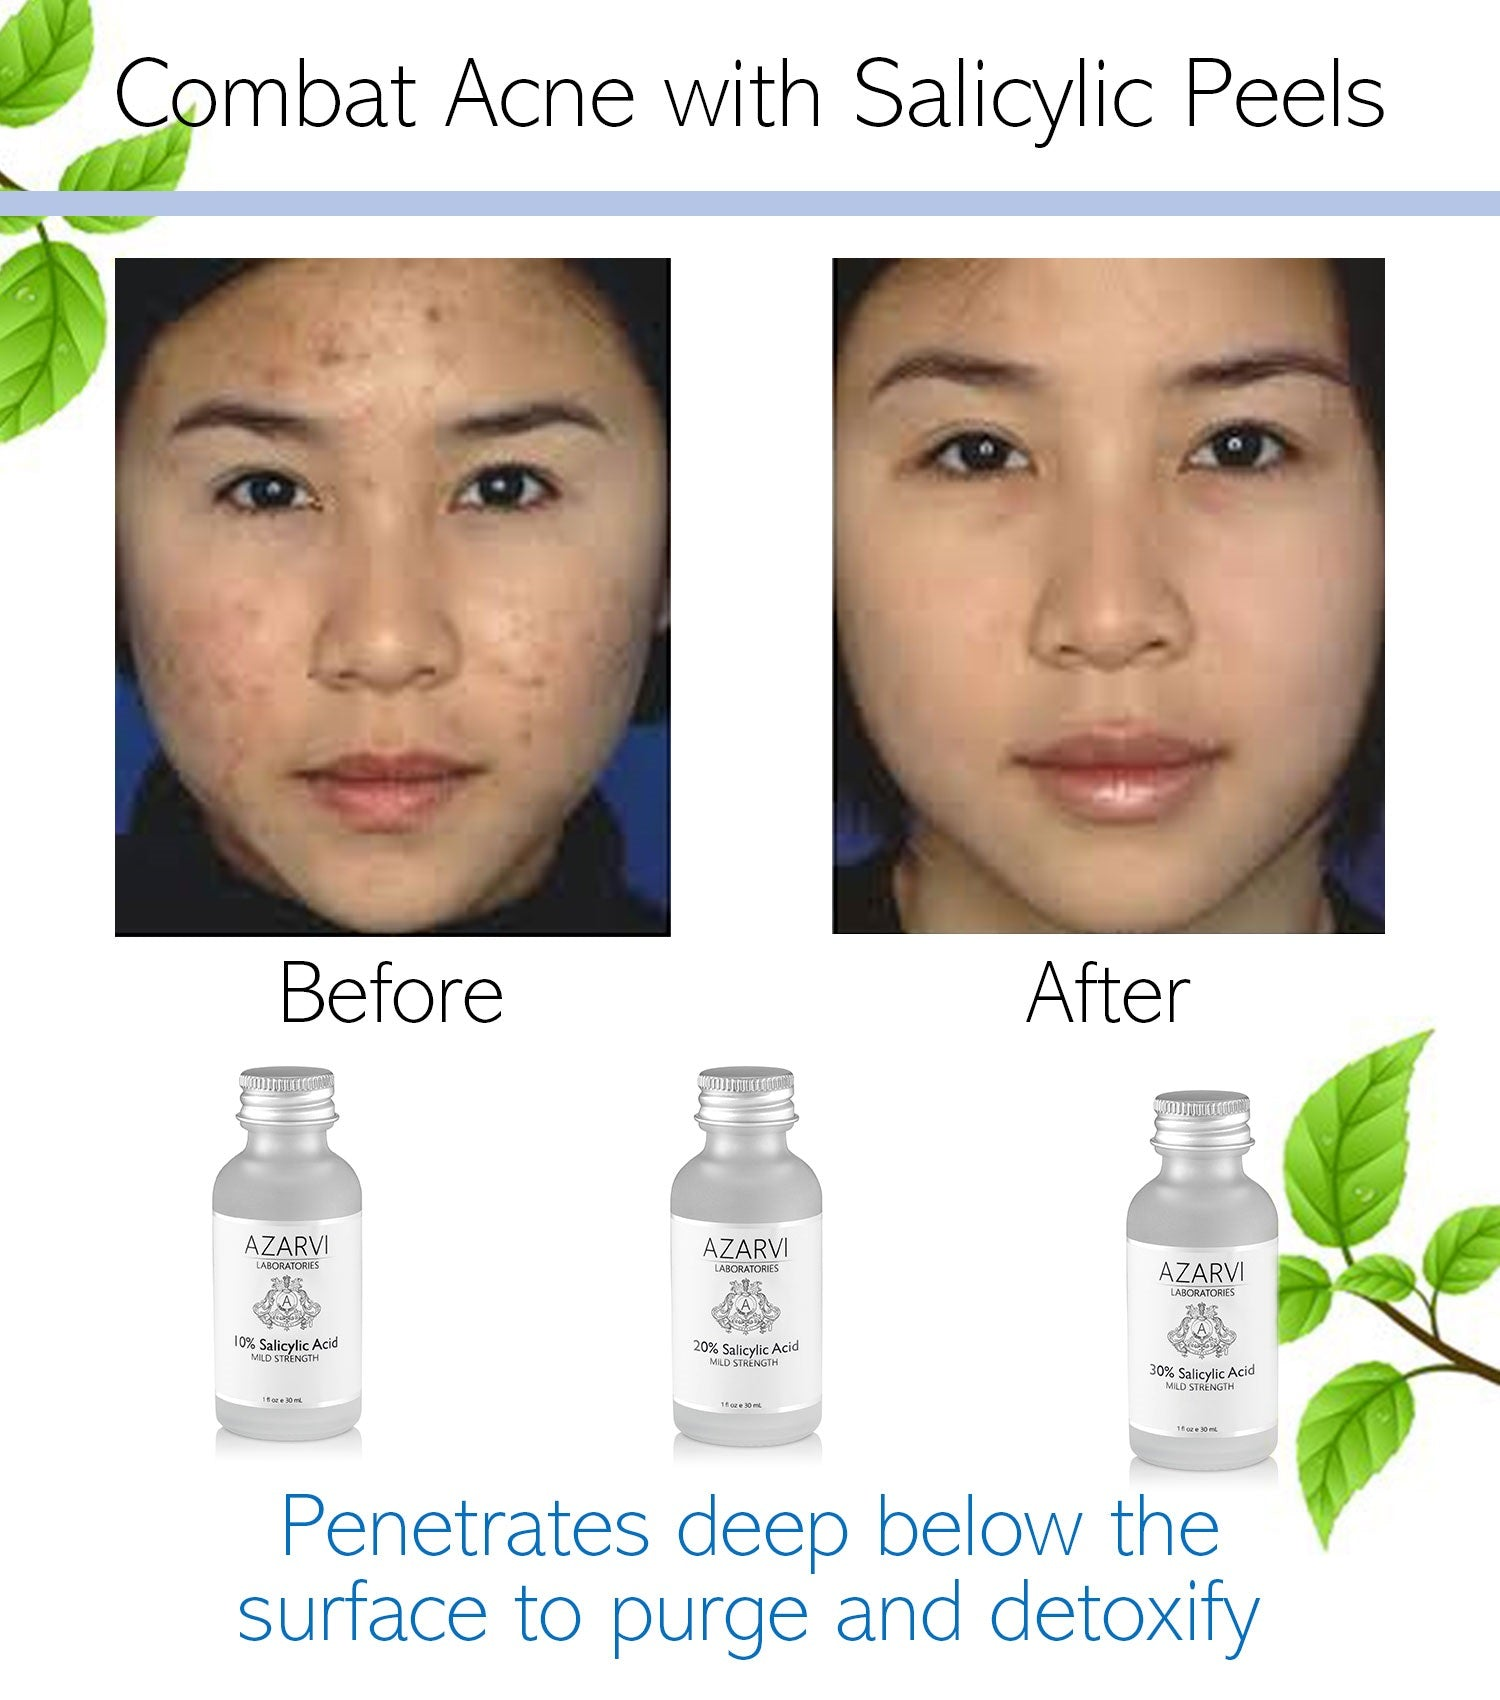 30% Salicylic Acid Chemical Peel with Neutralizer - Azarvi